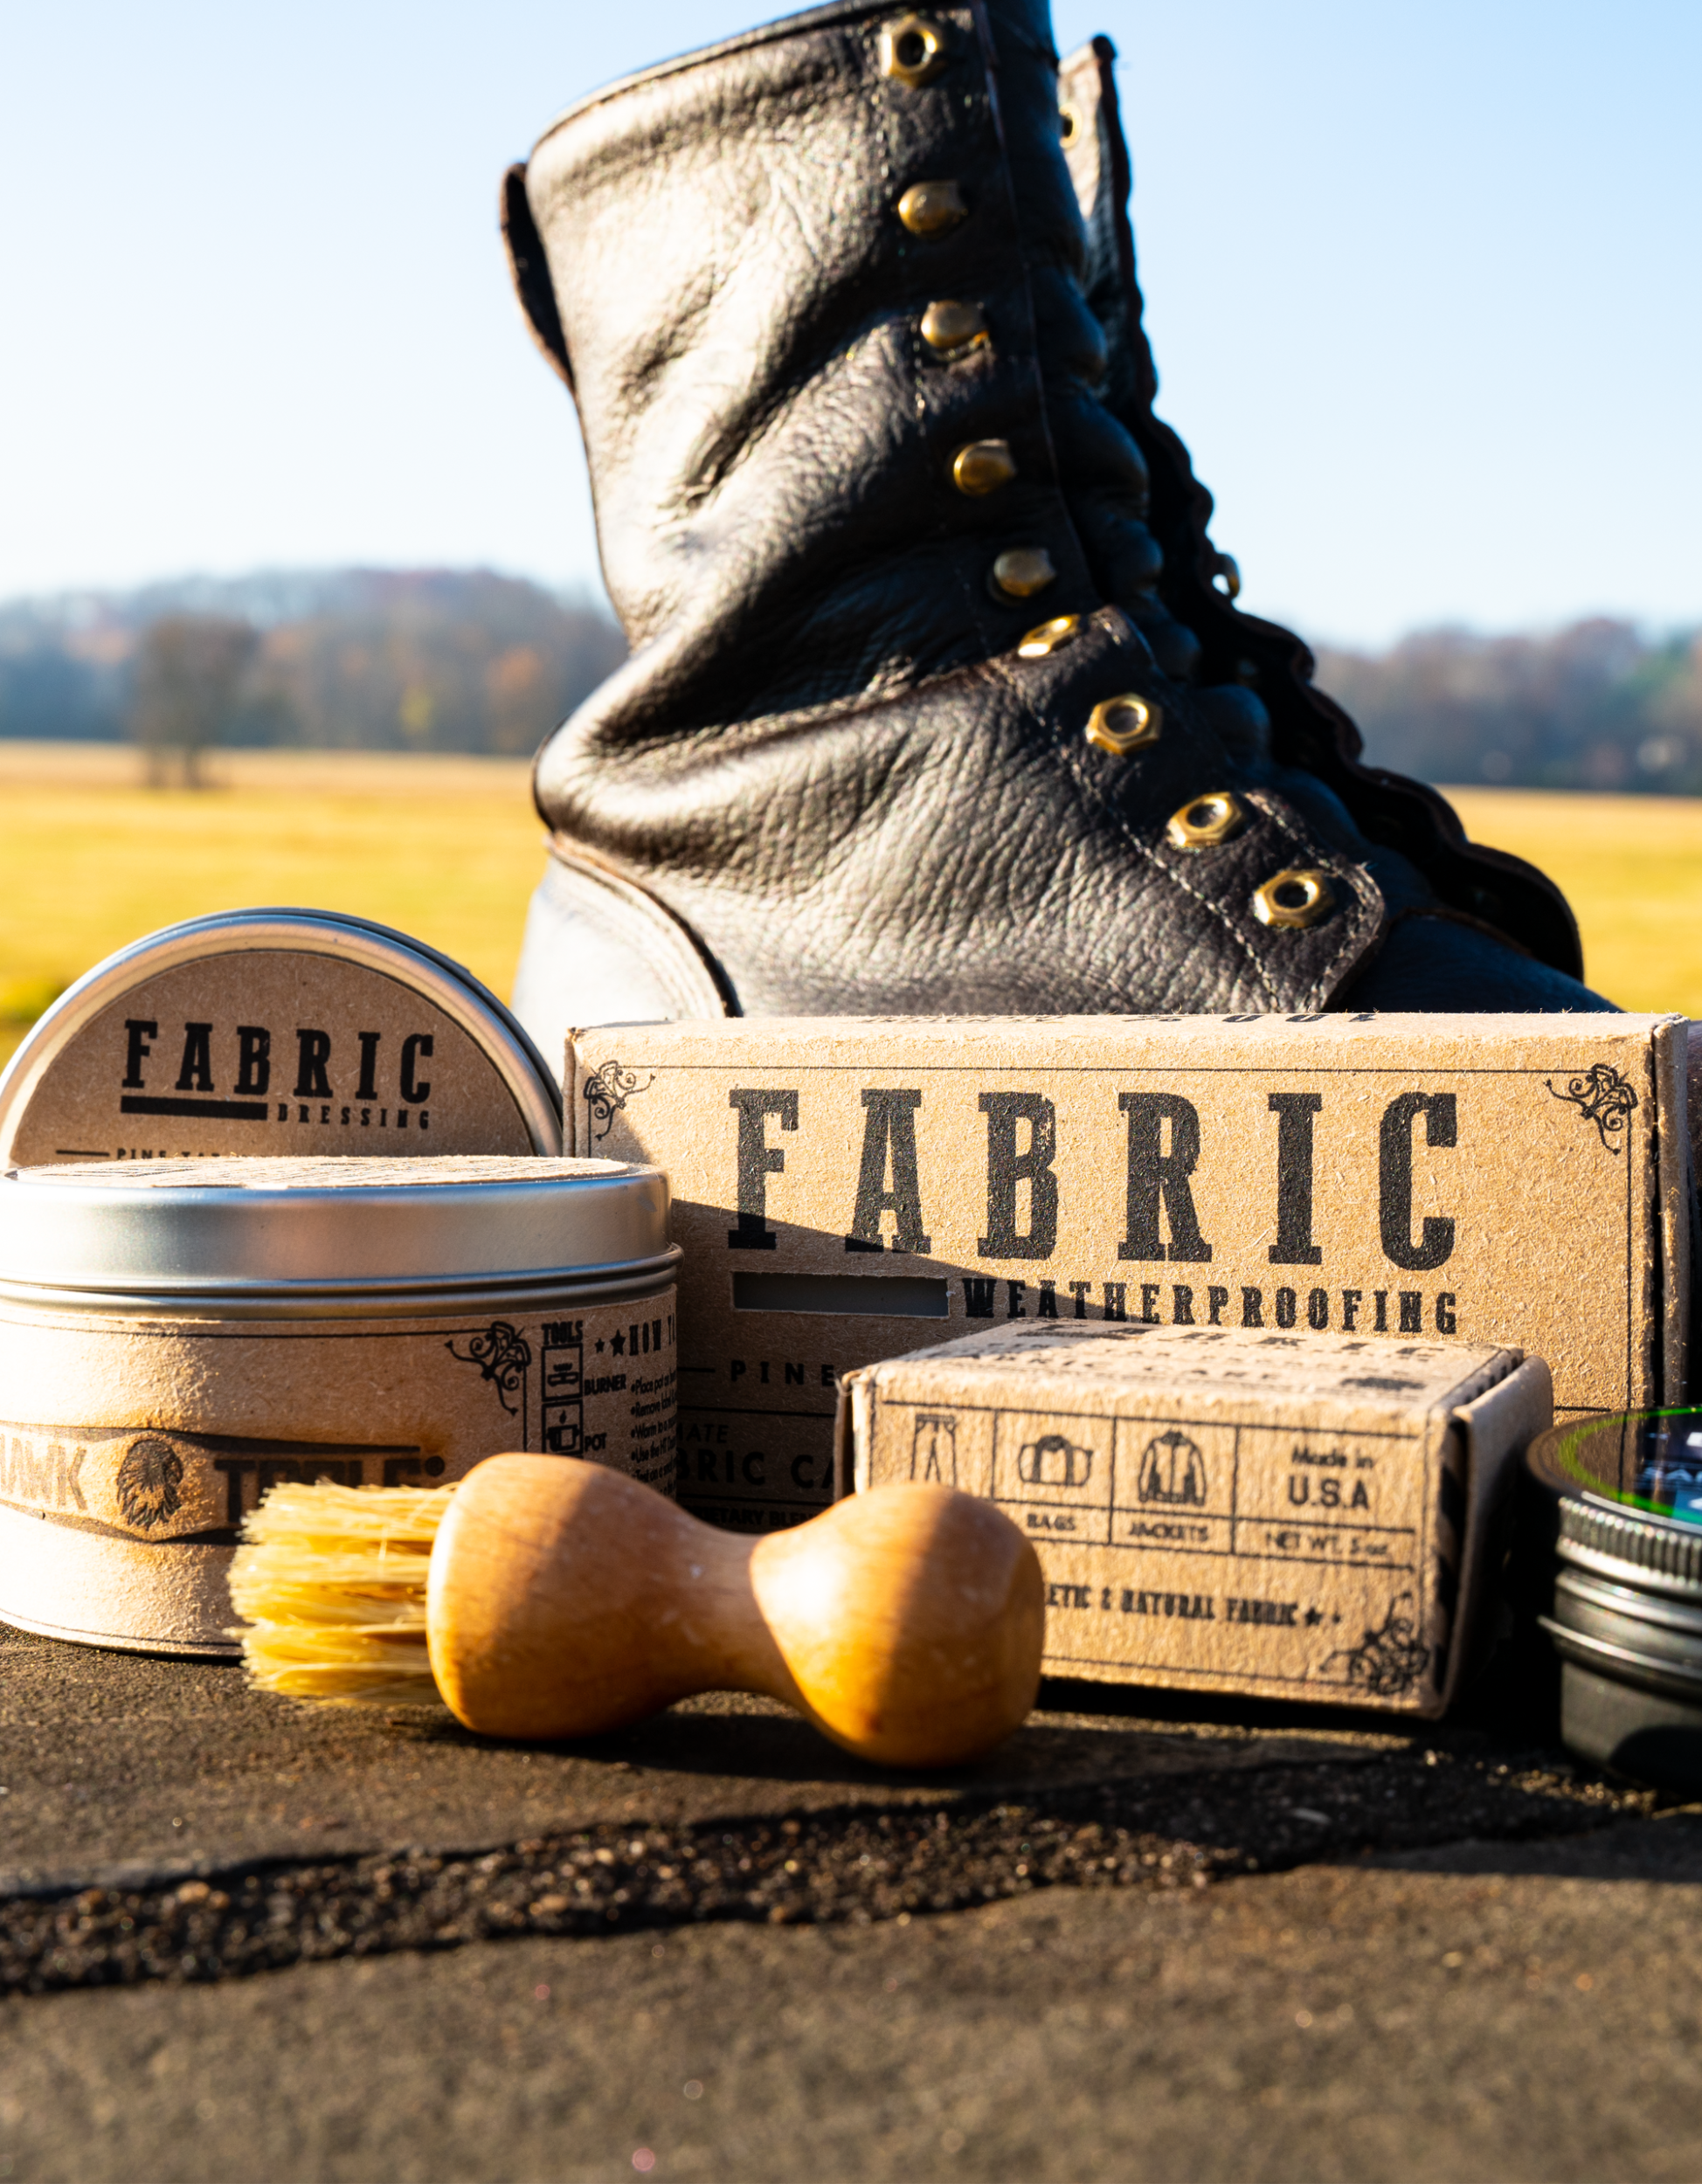 Fabric Weatherproofing Products Outdoor Pic